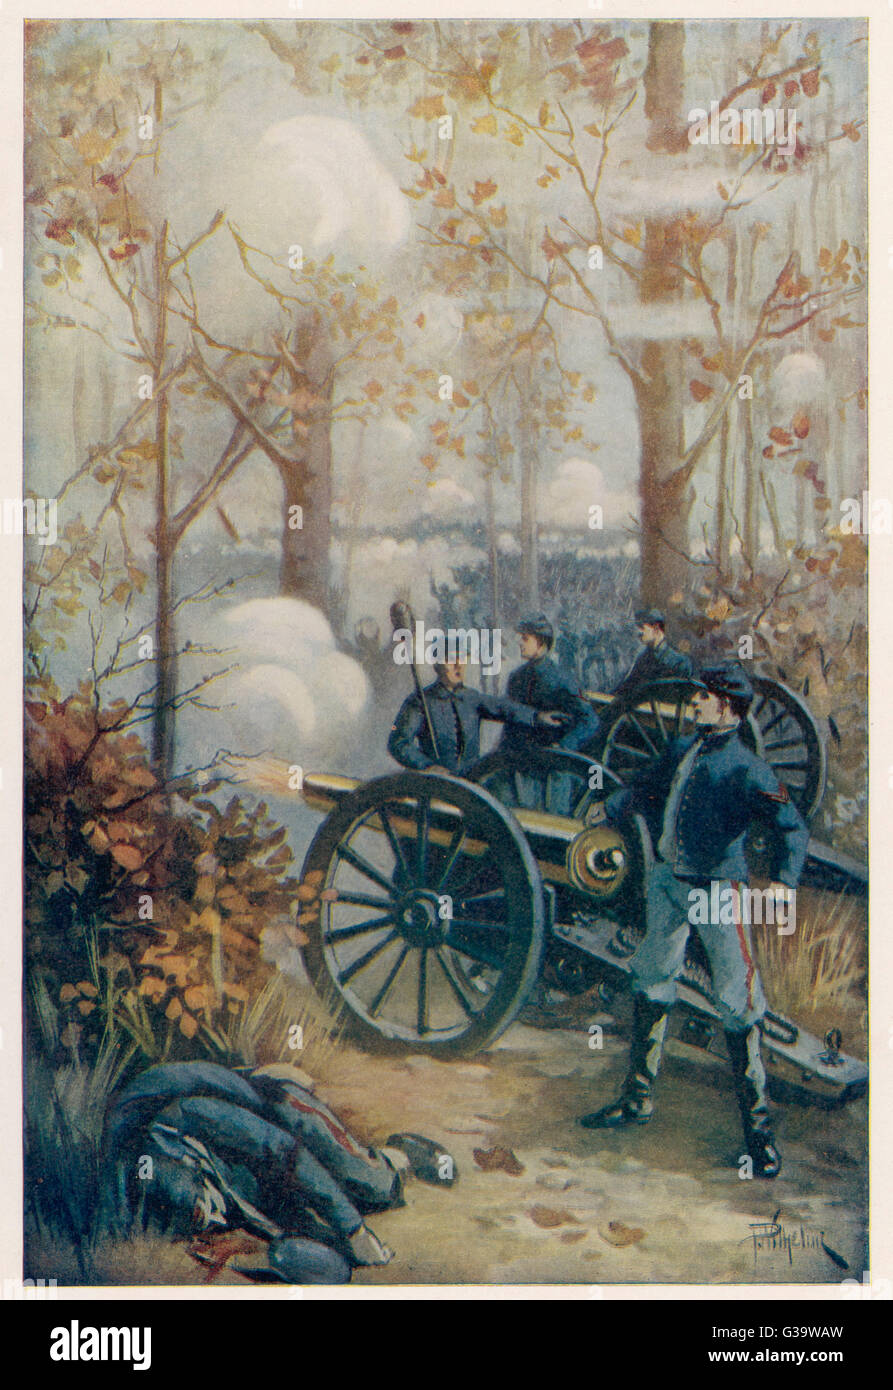 THE BATTLE OF SHILOH  An engagement between Union  forces under General Grant and  Confederate forces under  Albert - Stock Image